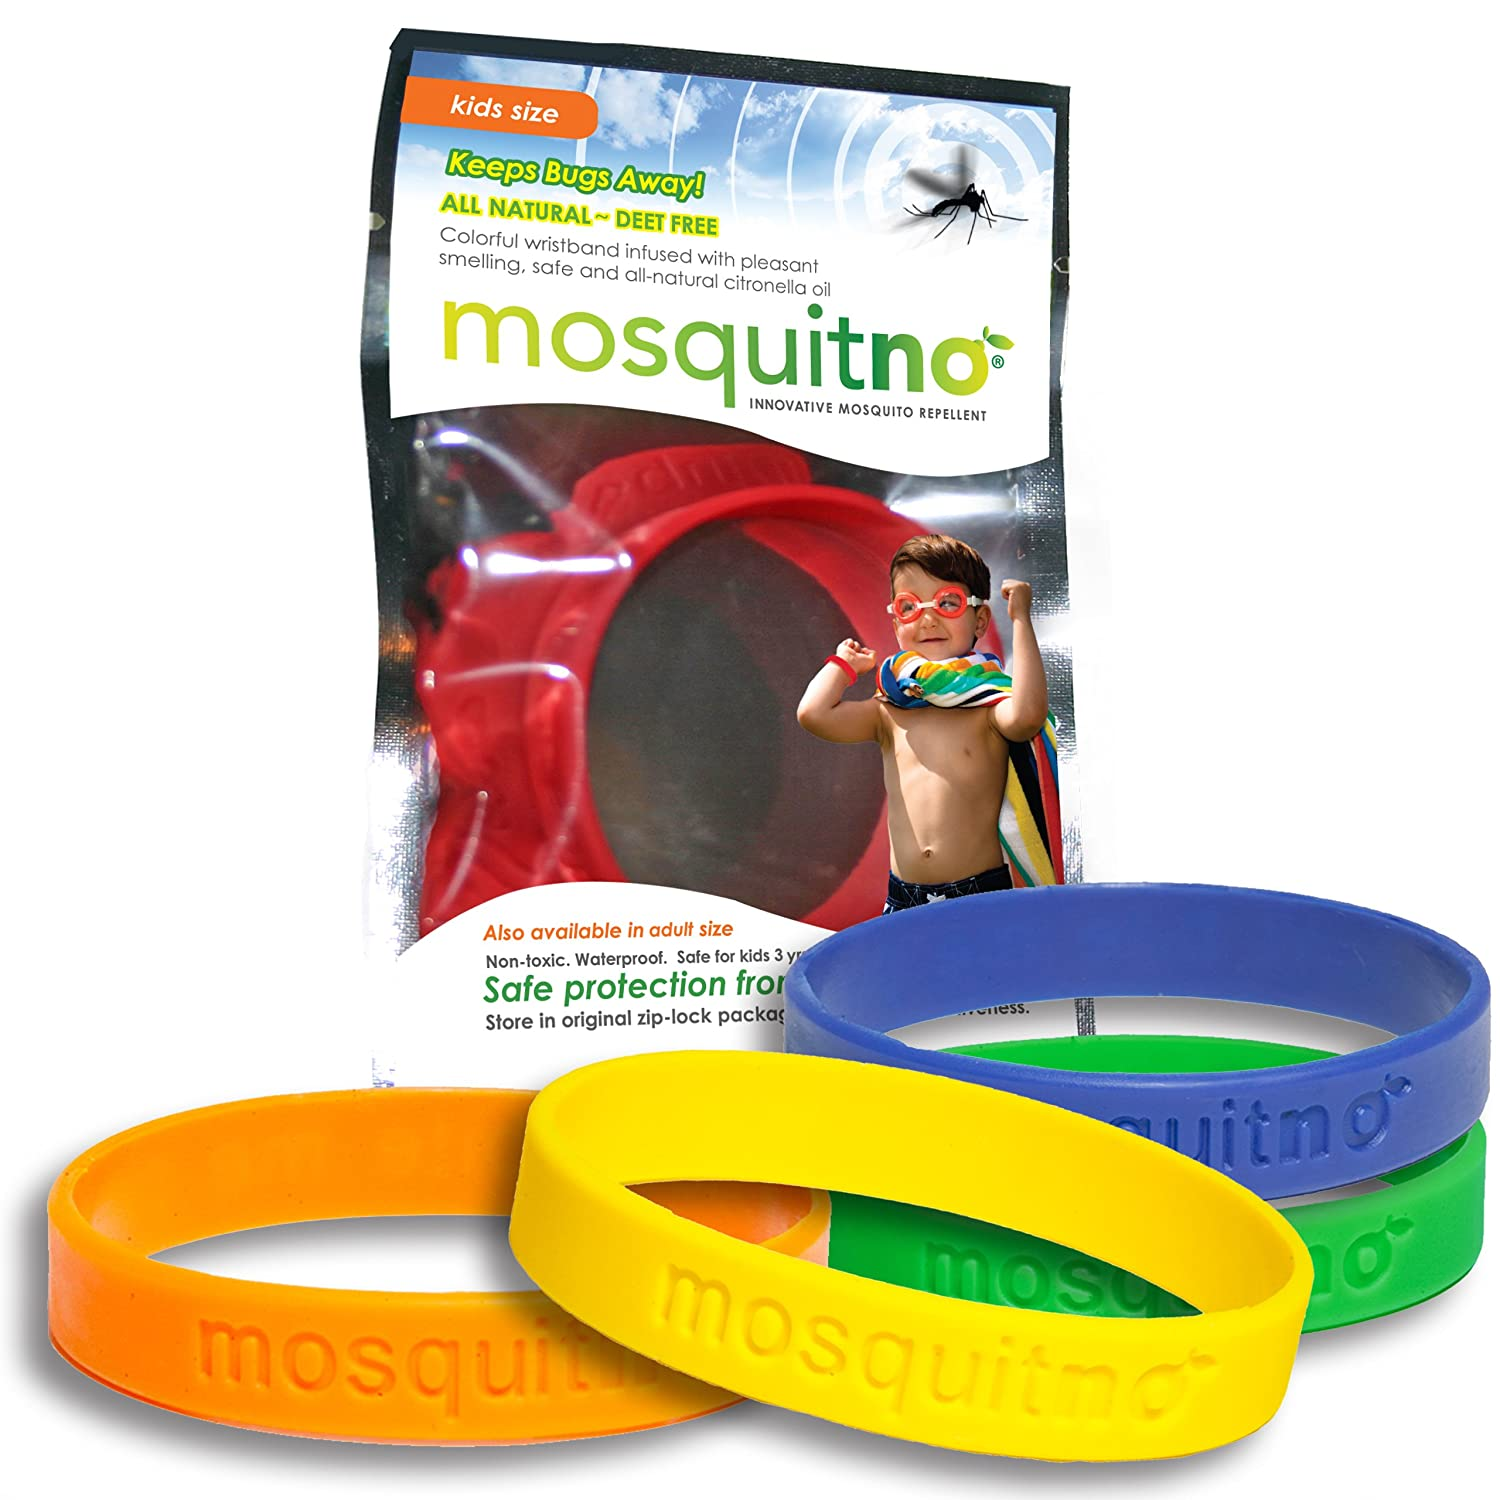 Mosquitno Natural Citronella Waterproof Mosquito Repeller Insect And Bug Electronic Kit Repellent Wristbands Kids 5 Pack Red Orange Green Navy Yellow Garden Outdoor